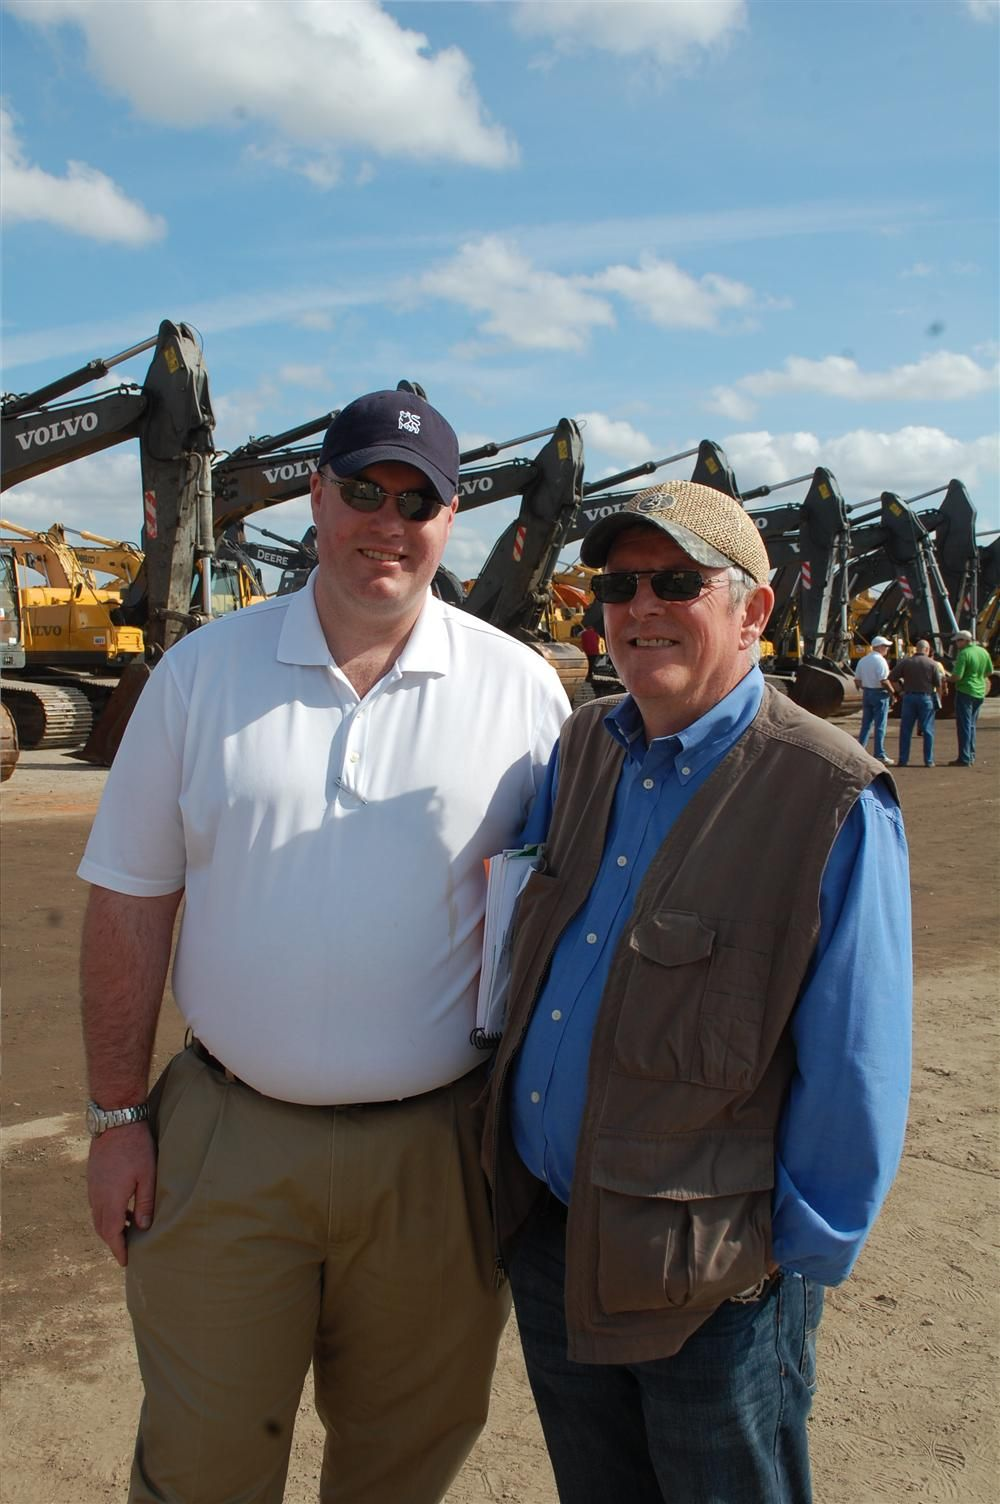 Bruce Knapp (R), used equipment manager of McClung-Logan, is accompanied by his son, Jeffrey Knapp, during day four of the six-day Ritchie Bros. auction.